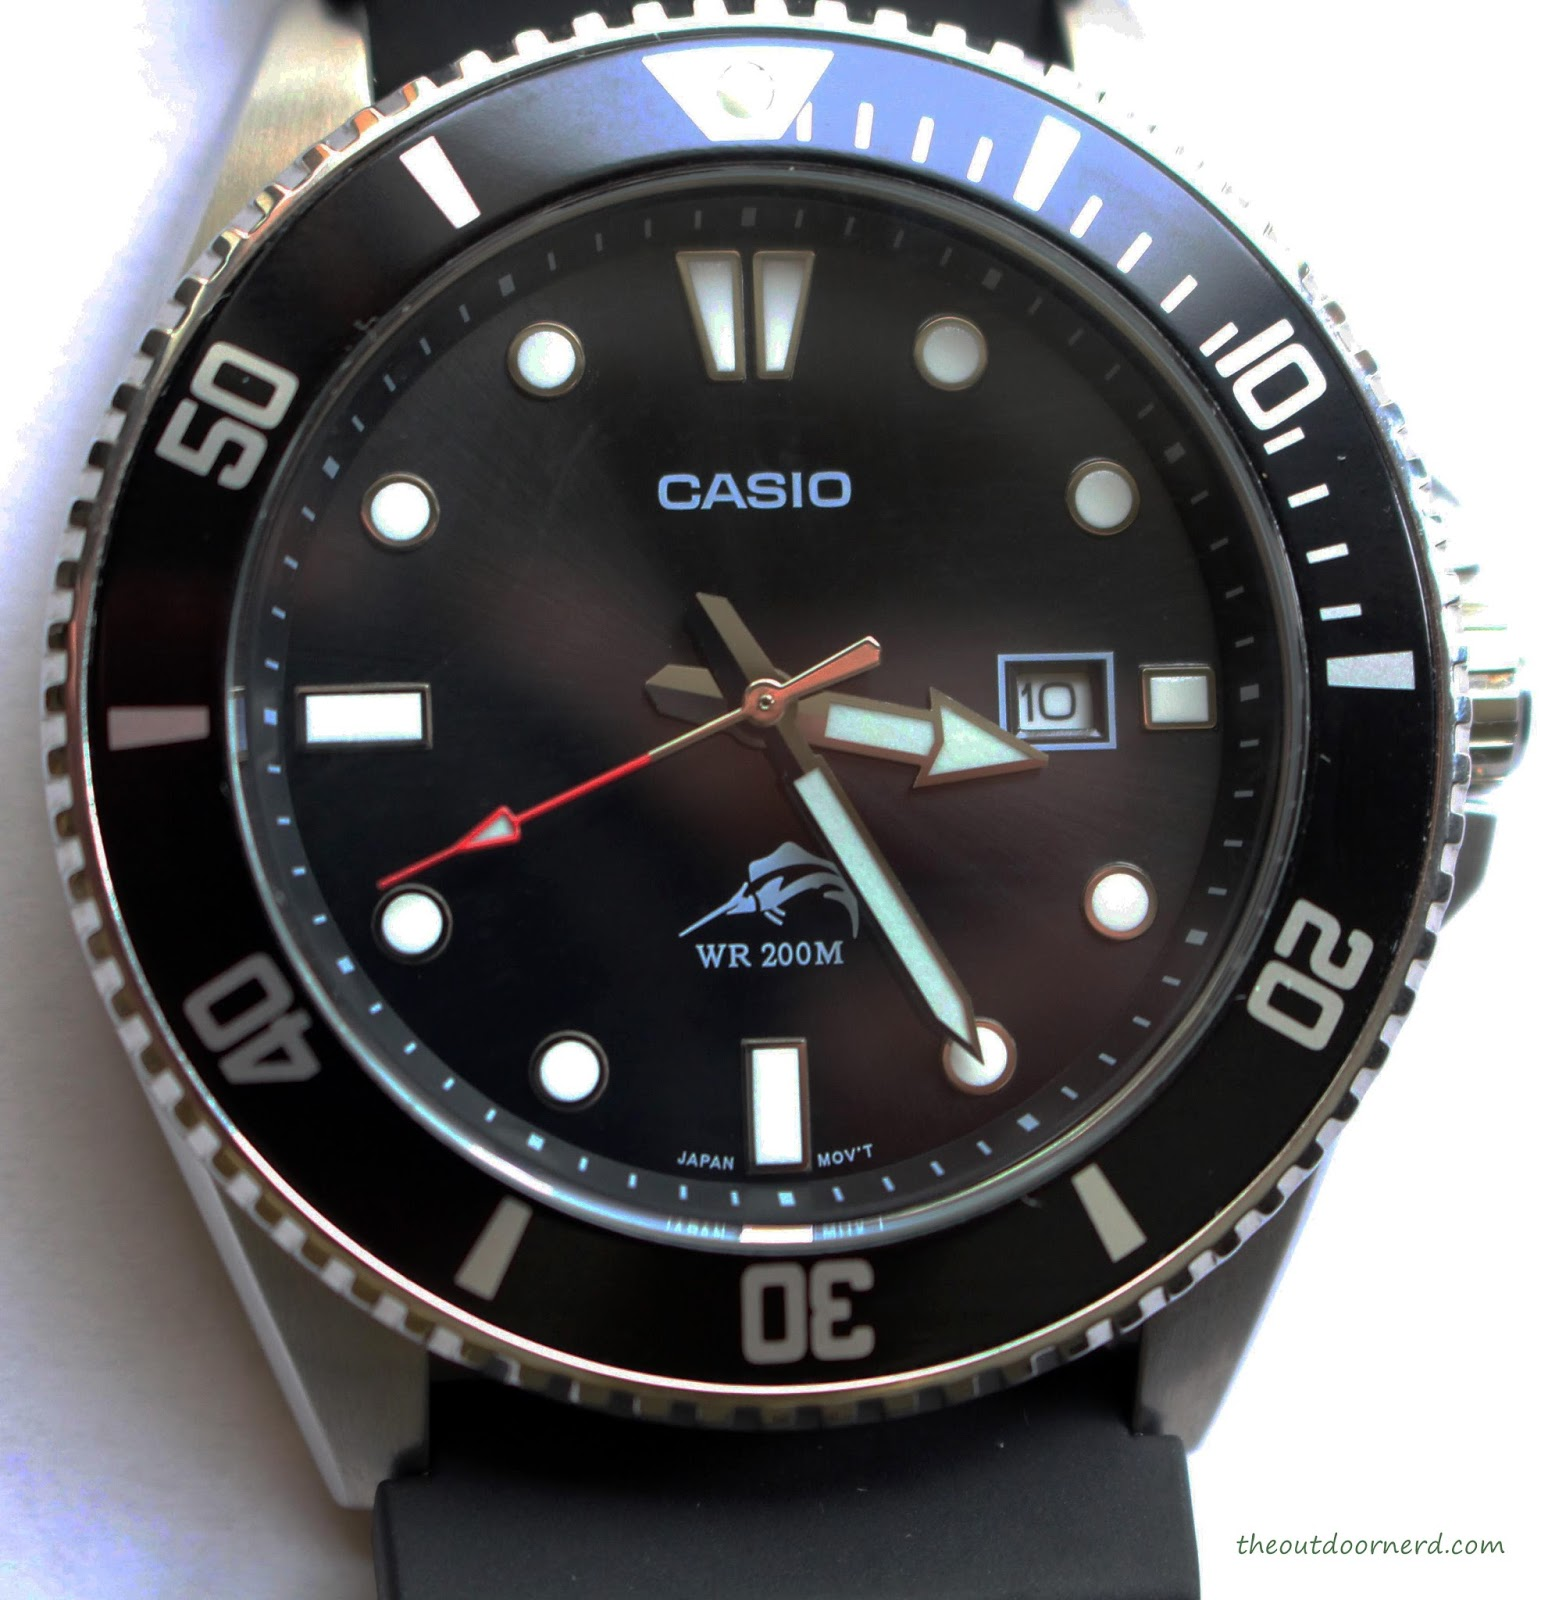 Casio MDV106-1A Diver's Watch: Closeup of Dial